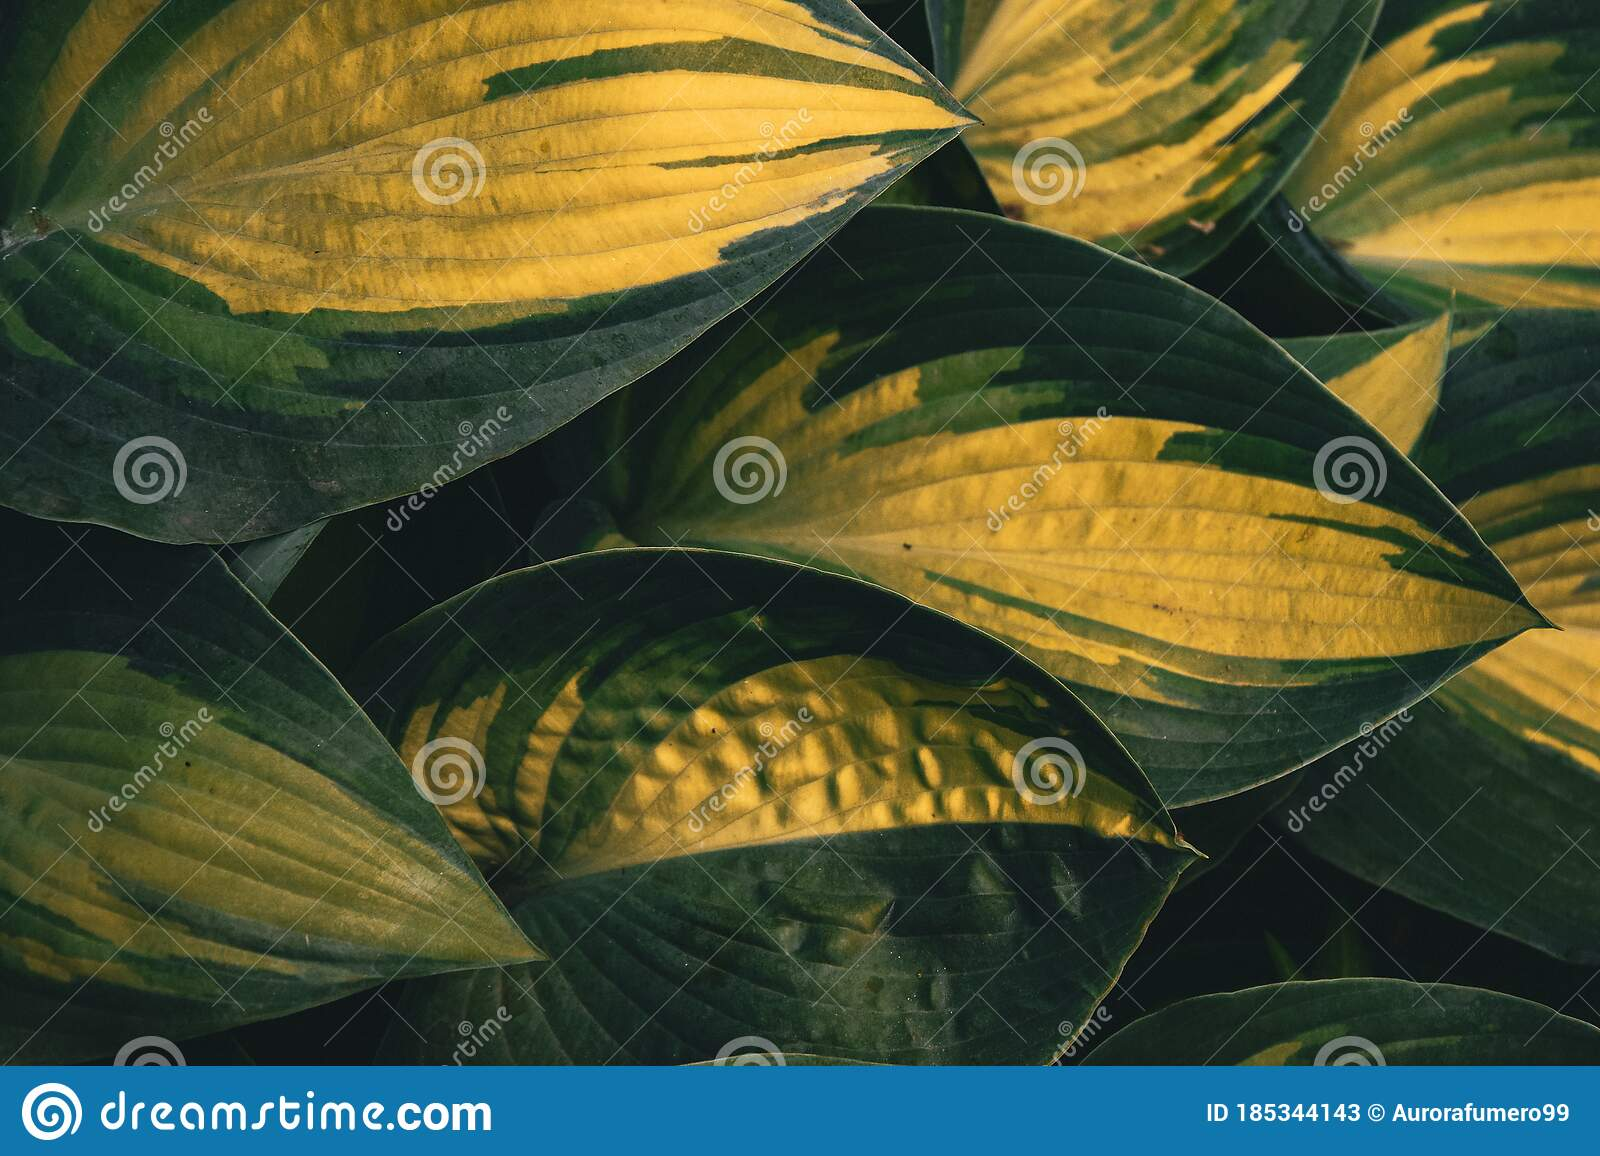 Tropical Leaves Big Tropical Leaves Background Wallaper Stock Image Image Of Facebook Leaves 185344143 Search, discover and share your favorite tropical leaves gifs. dreamstime com